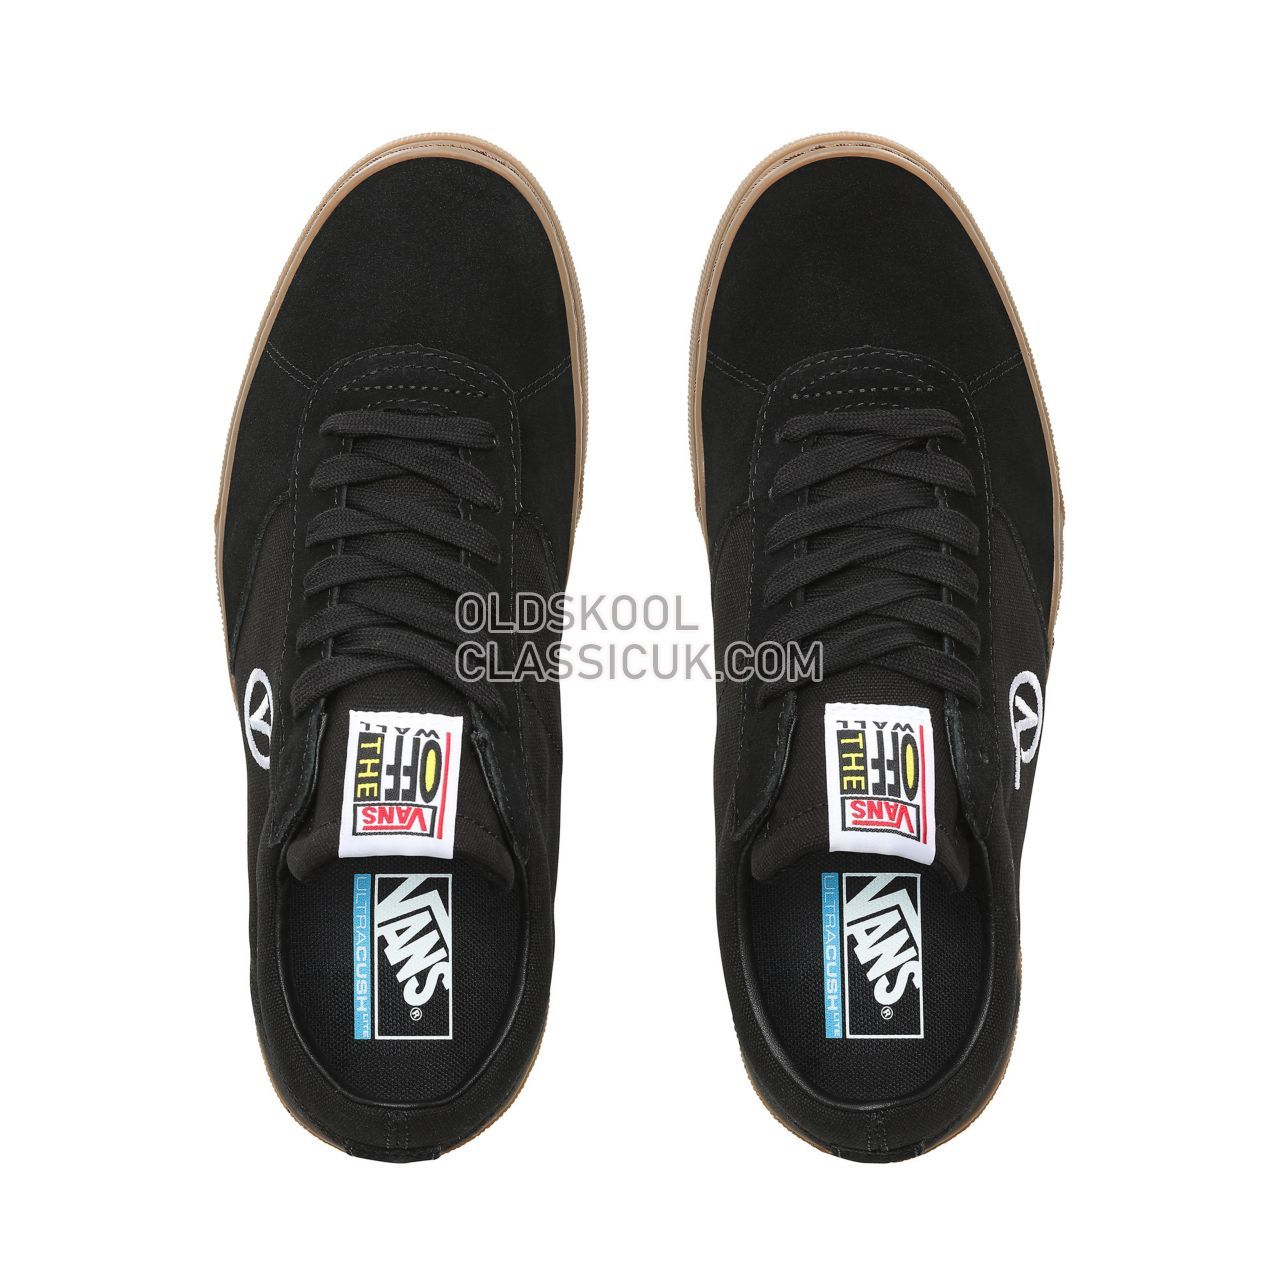 Vans Paradoxxx Sneakers Mens Black/Gum VN0A3TKKB9M Shoes